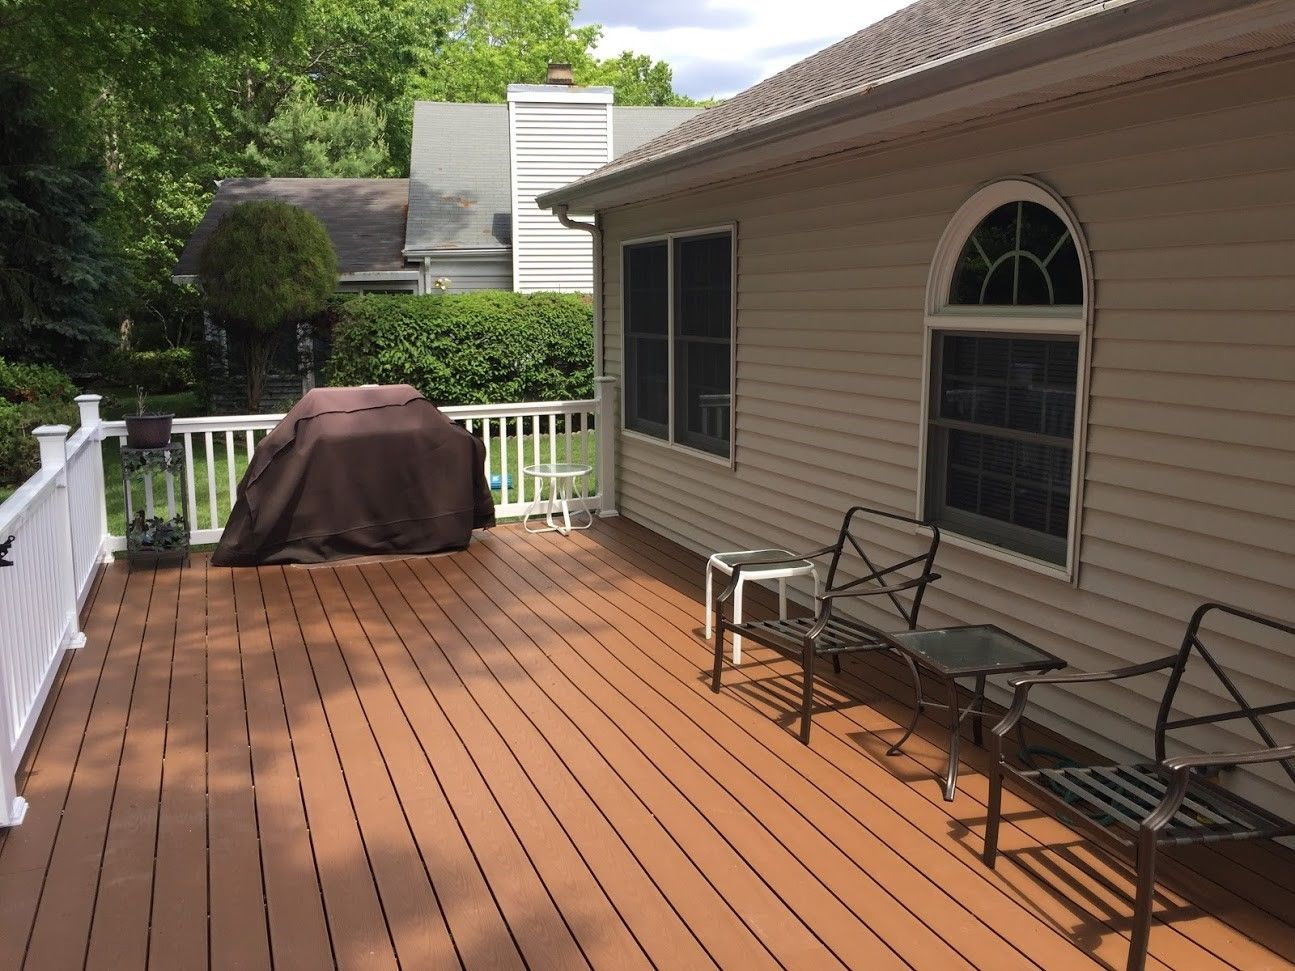 Toms River NJ Wolfe Deck - Picture 7464